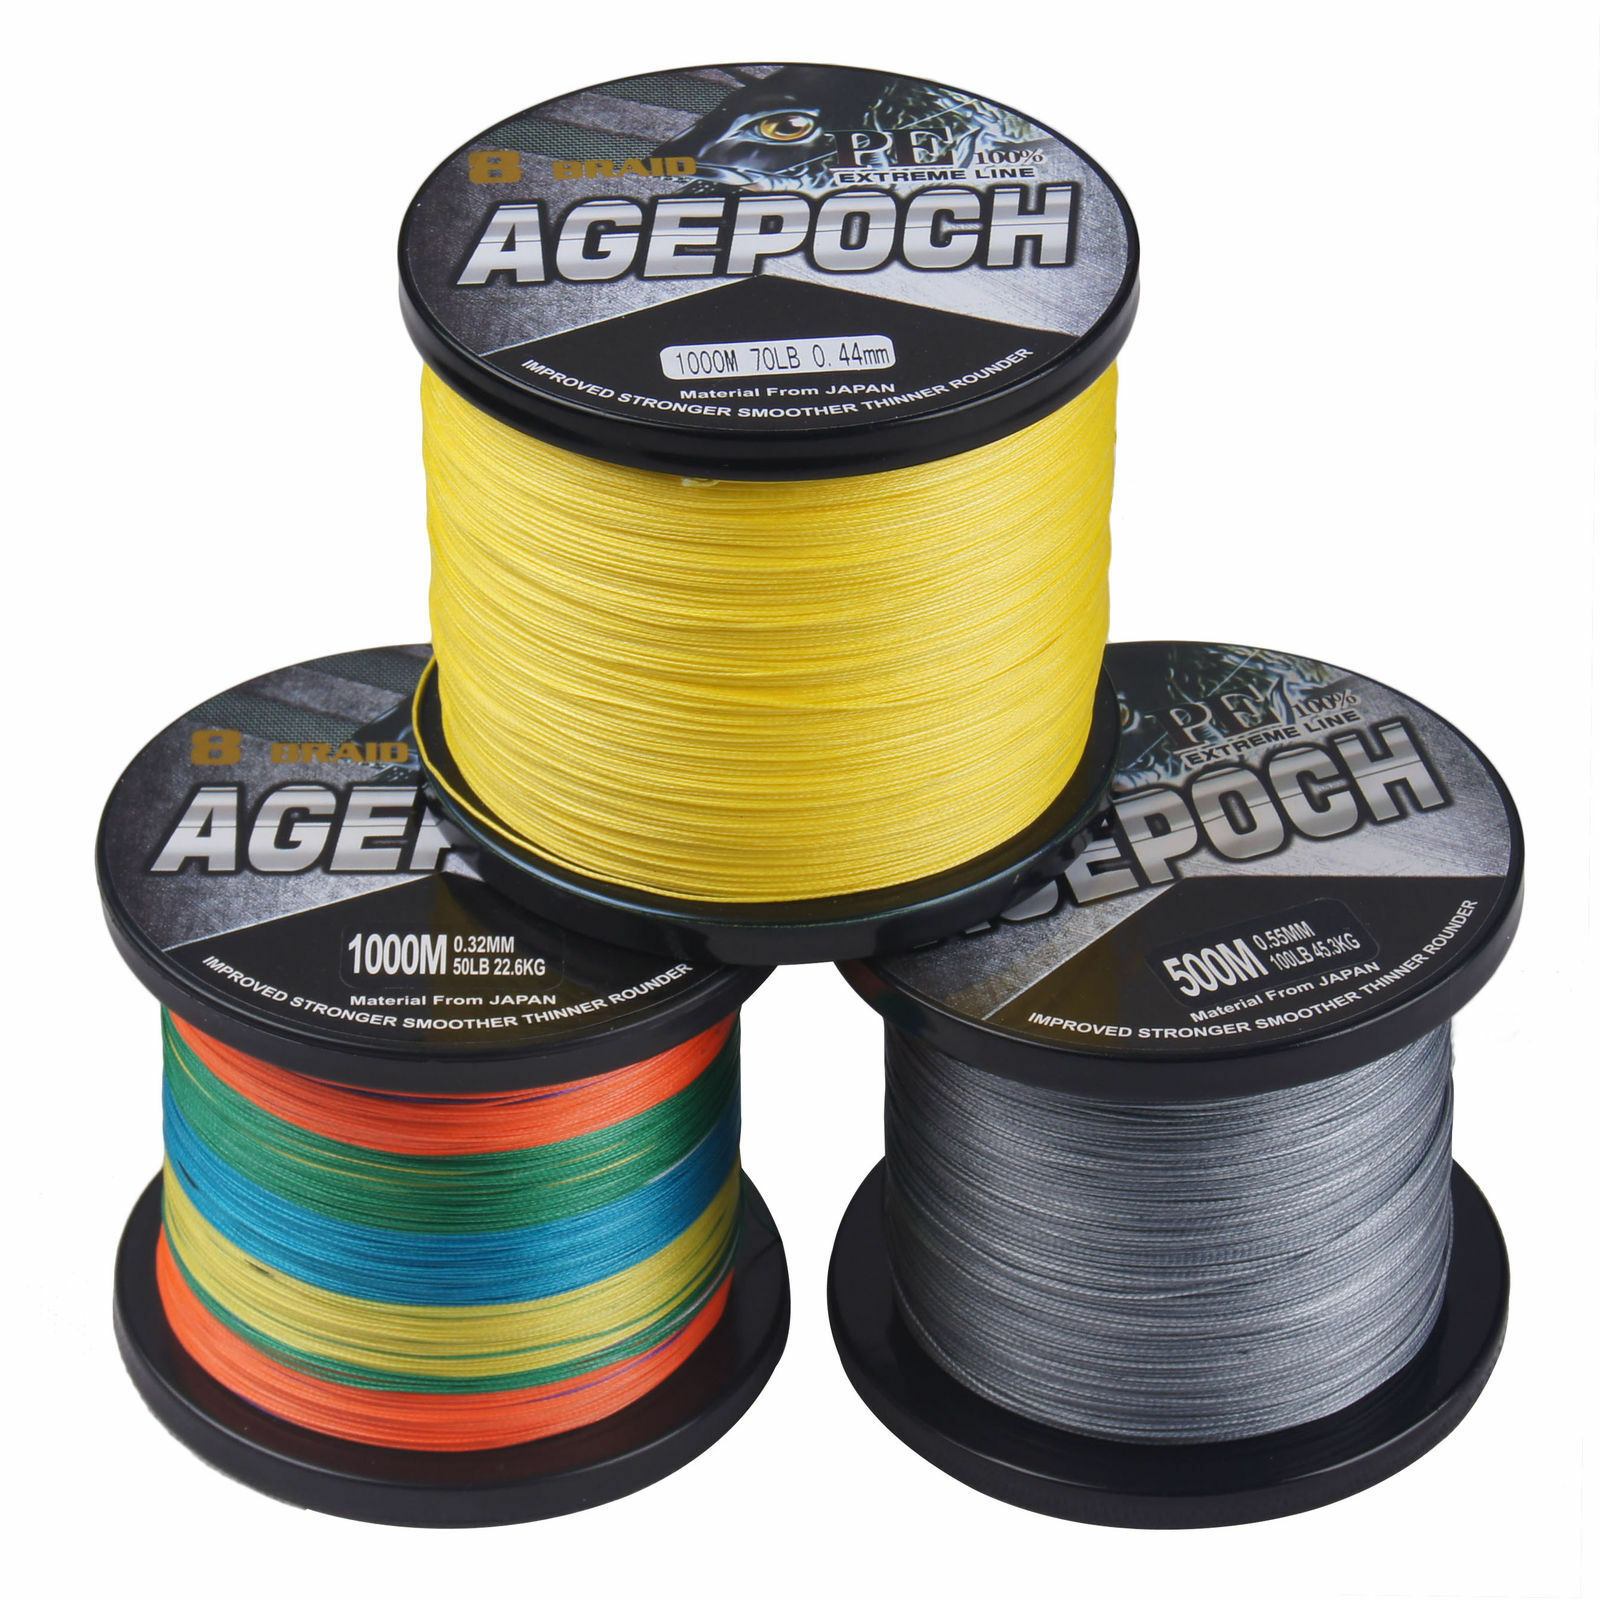 8 Strands 100M-1000M 5 colors Dyneema Braided Fishing Line 10LB-100LB Agepoch